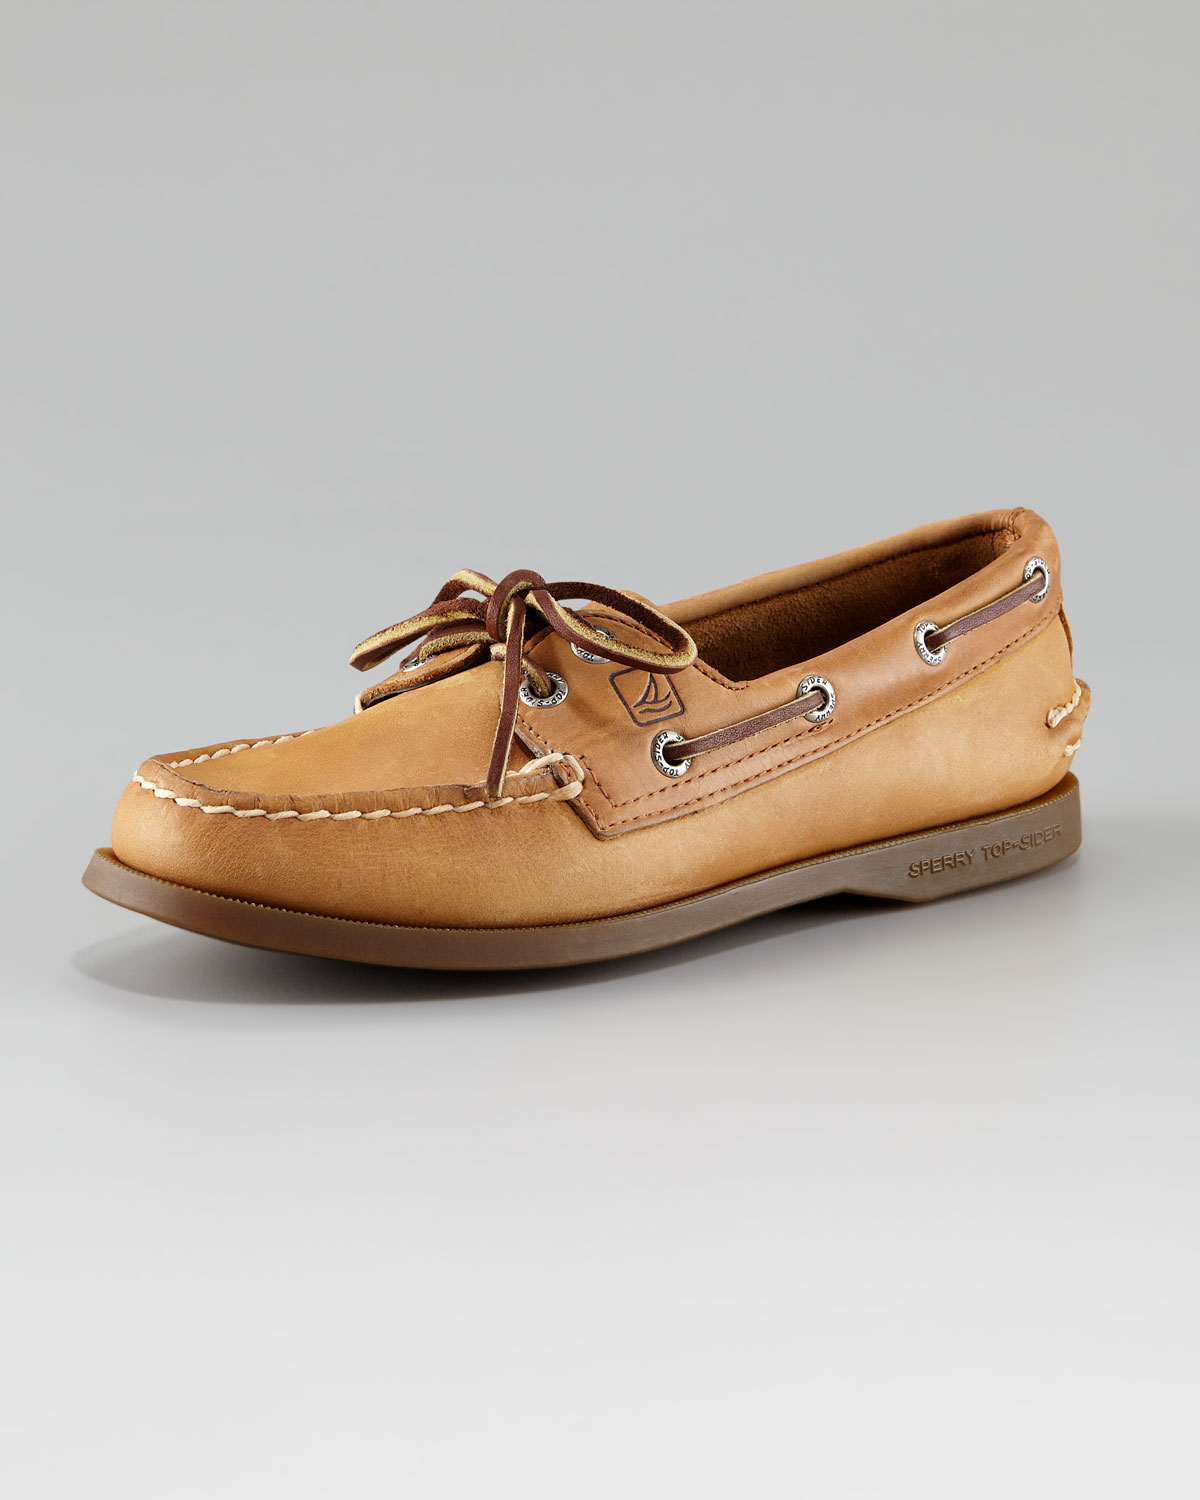 Lyst - Sperry Top-Sider Authentic Nubuck Boat Shoe in Brown ea198caef